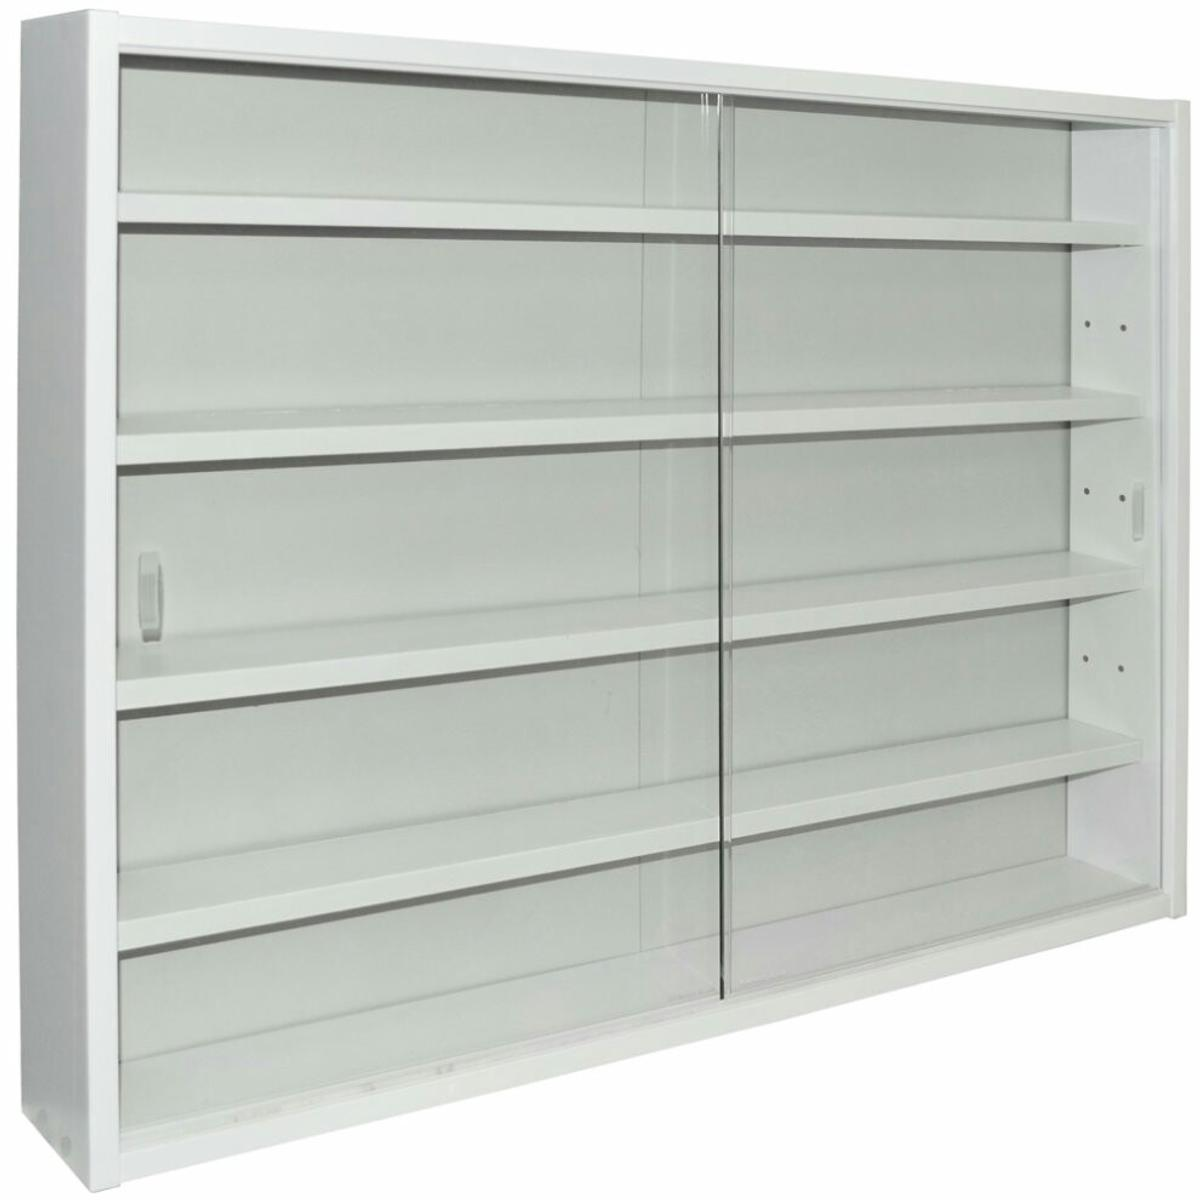 ****.... WANTED PLEASE ...**** Looking for a WHITE Glass wall display cabinet In Good Condition (Like/Similar to the one in the Photo, but must be White) If anyone has one for Sale, please send me a message with Price, Size & Where Collection is,.. Thank You Middlesbrough Area